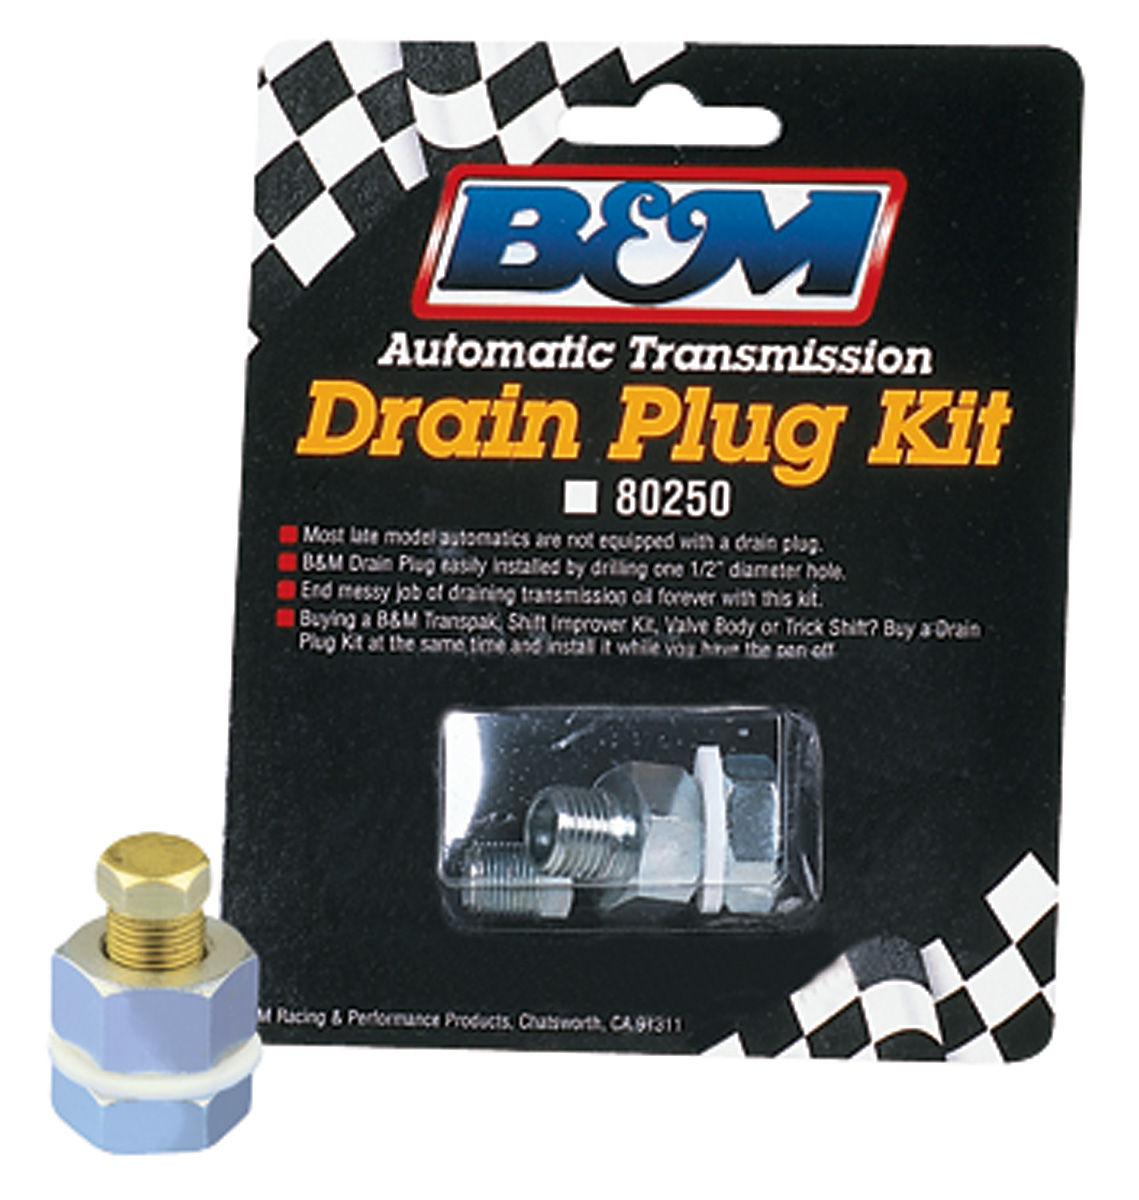 Drain Plug Kit, B&M, Automatic Transmission